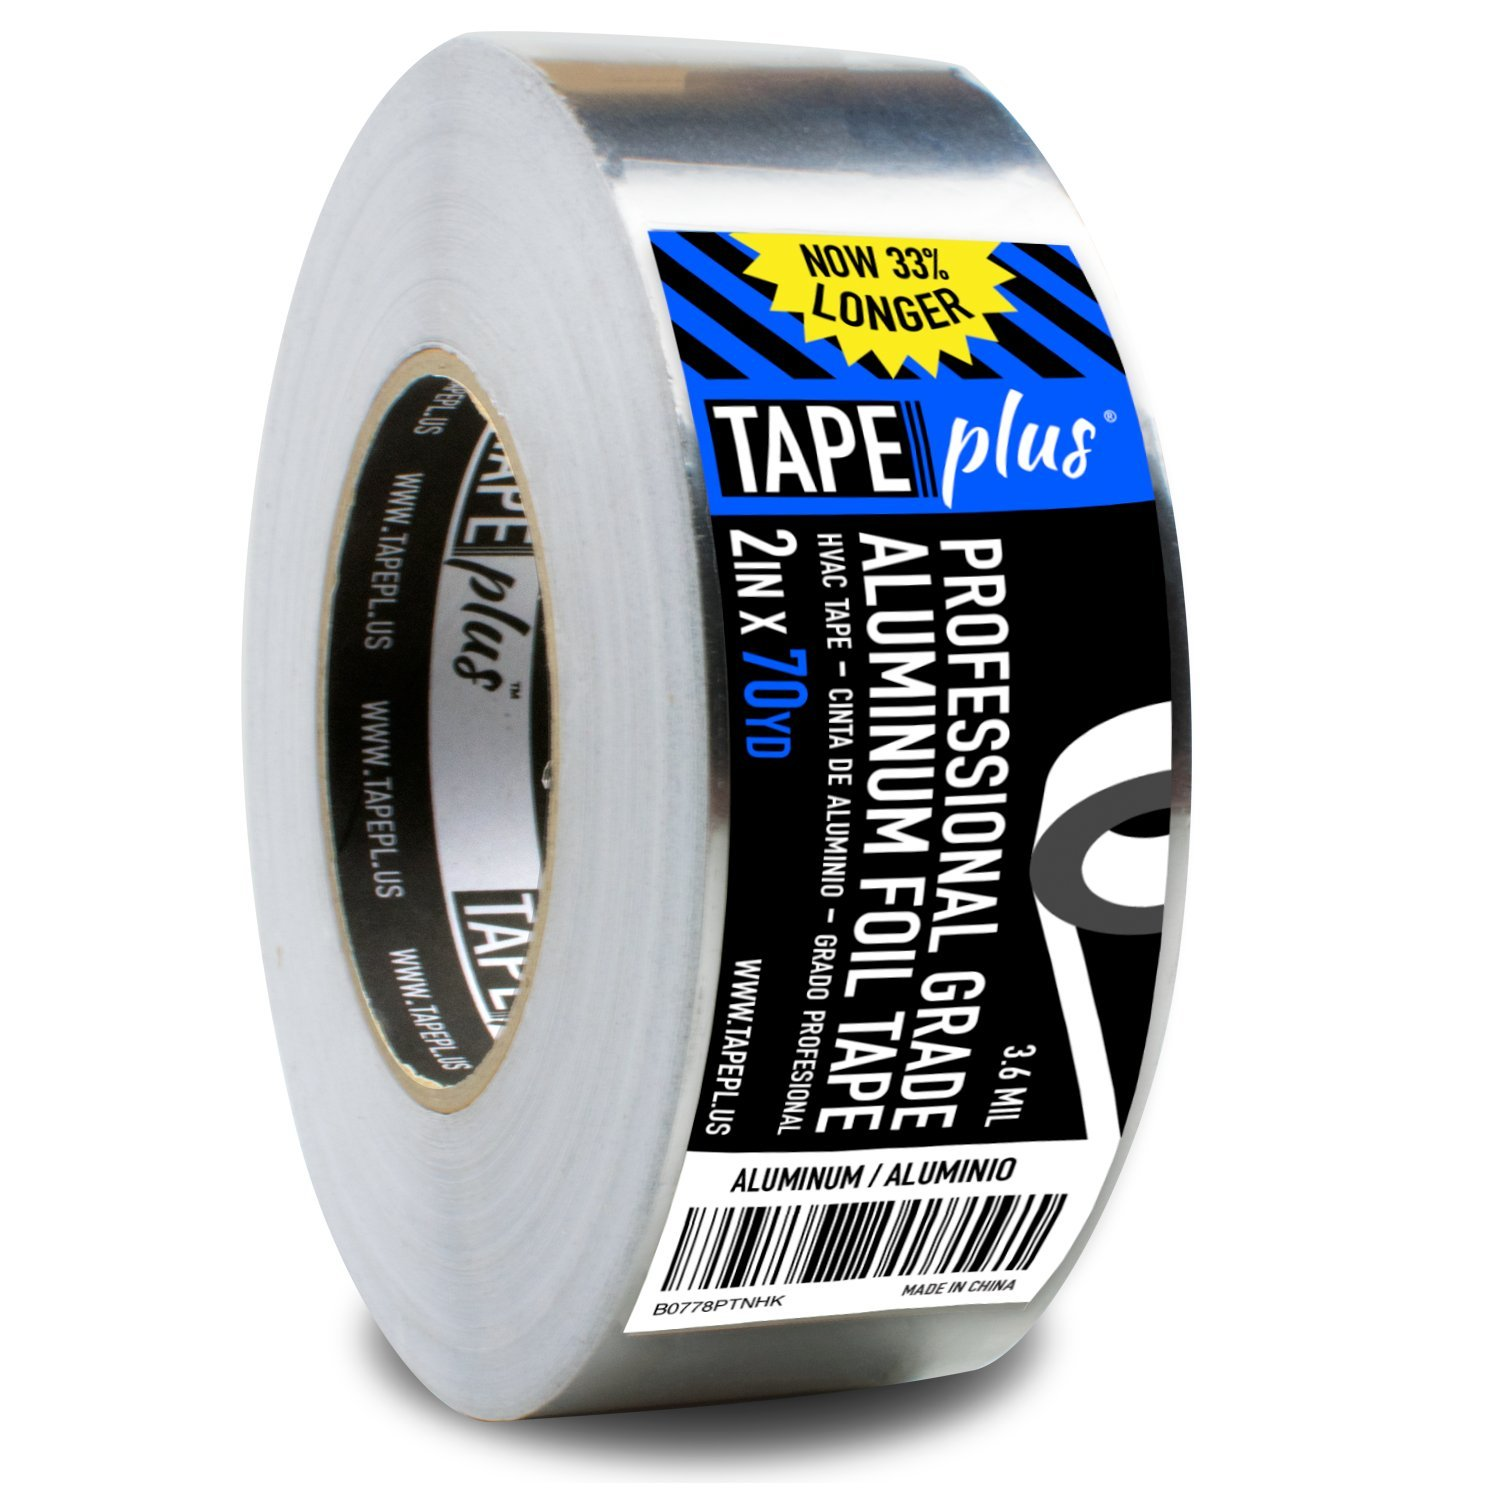 Professional Grade Aluminum Foil Tape - 2 Inch by 210 Feet (70 Yards) - Perfect for HVAC, Sealing & Patching Hot & Cold Air Ducts, Metal Repair, and Much More! by TapePlus